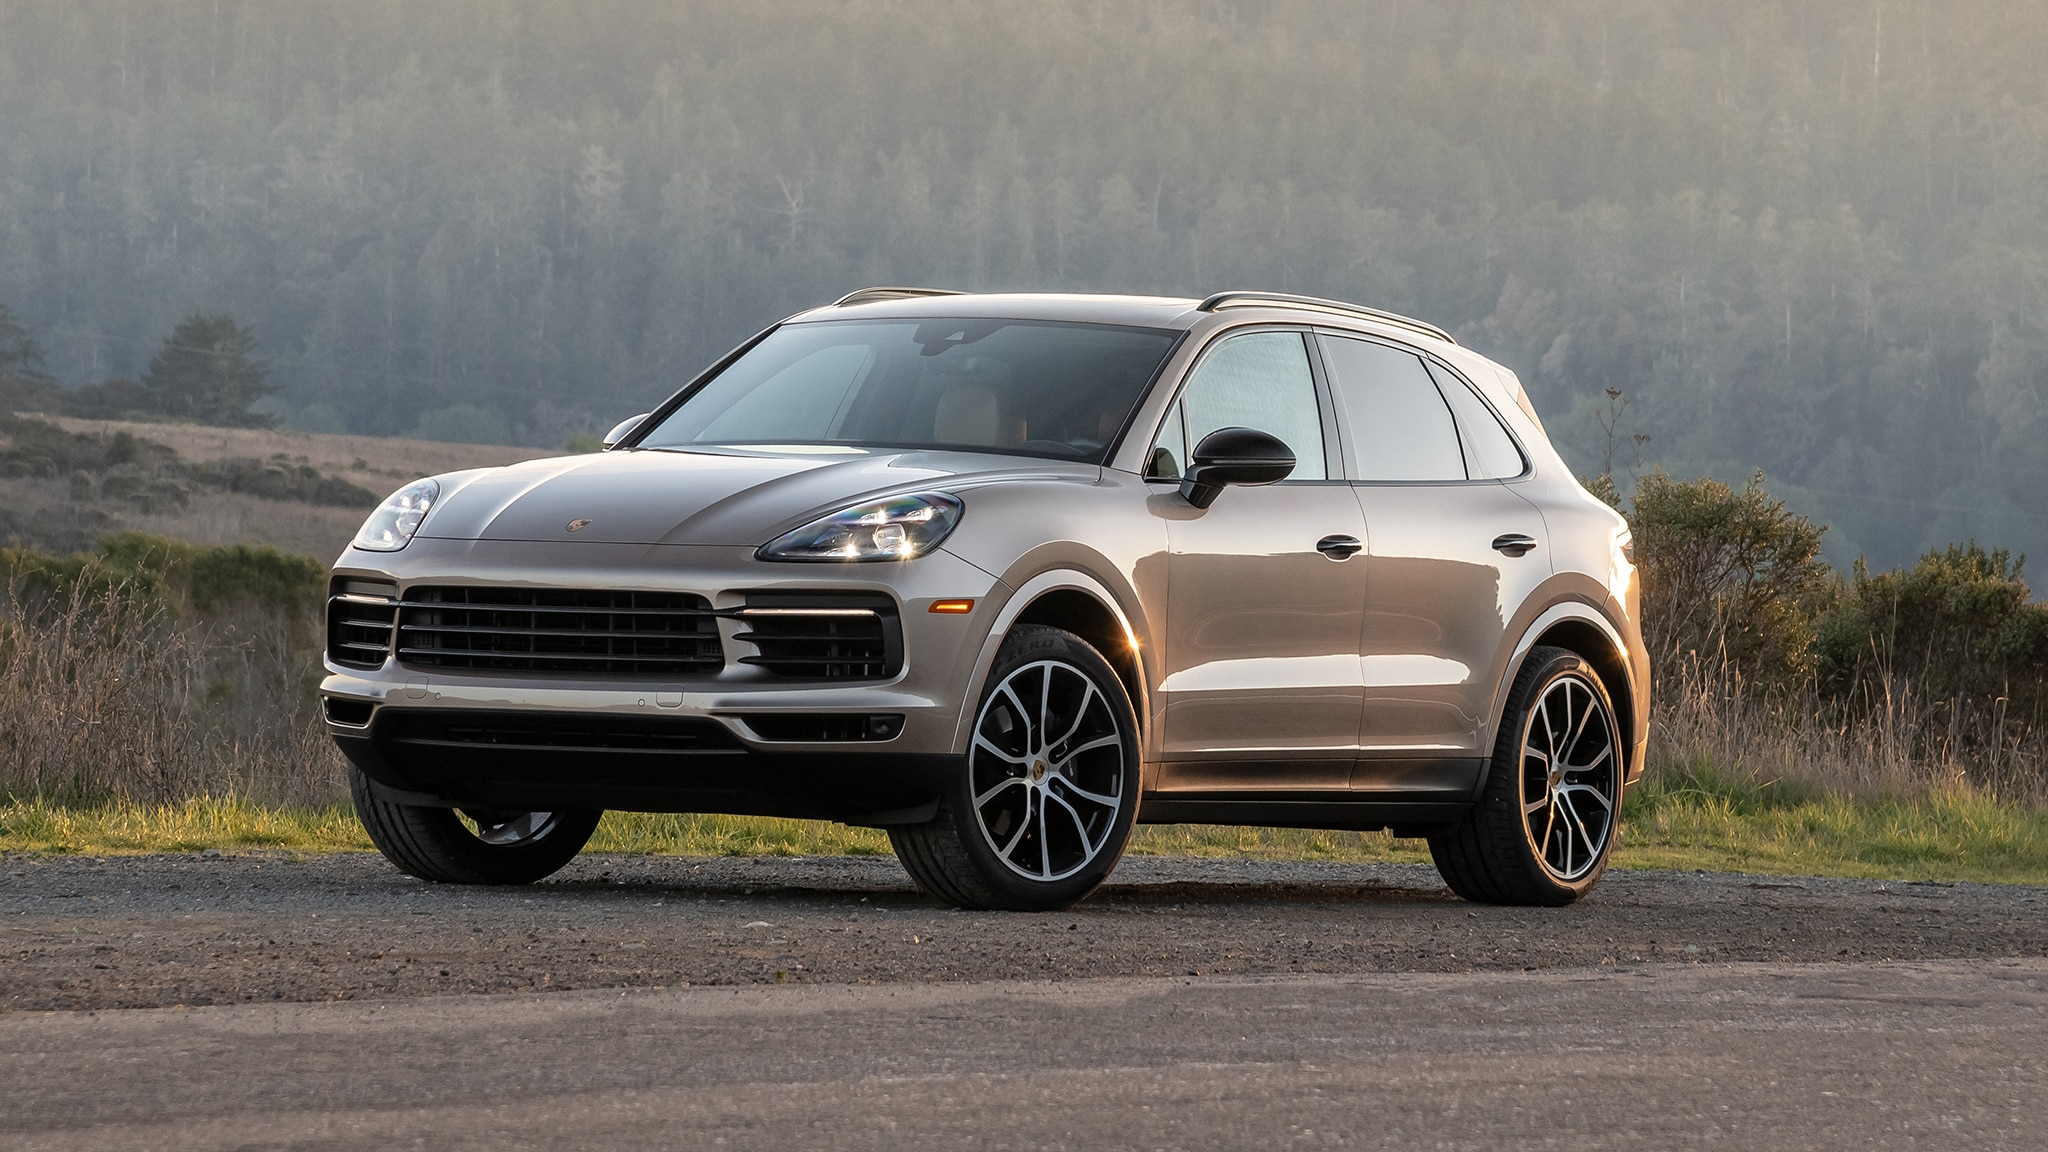 2019 Porsche Cayenne S Review: Staggeringly Well-Rounded ...